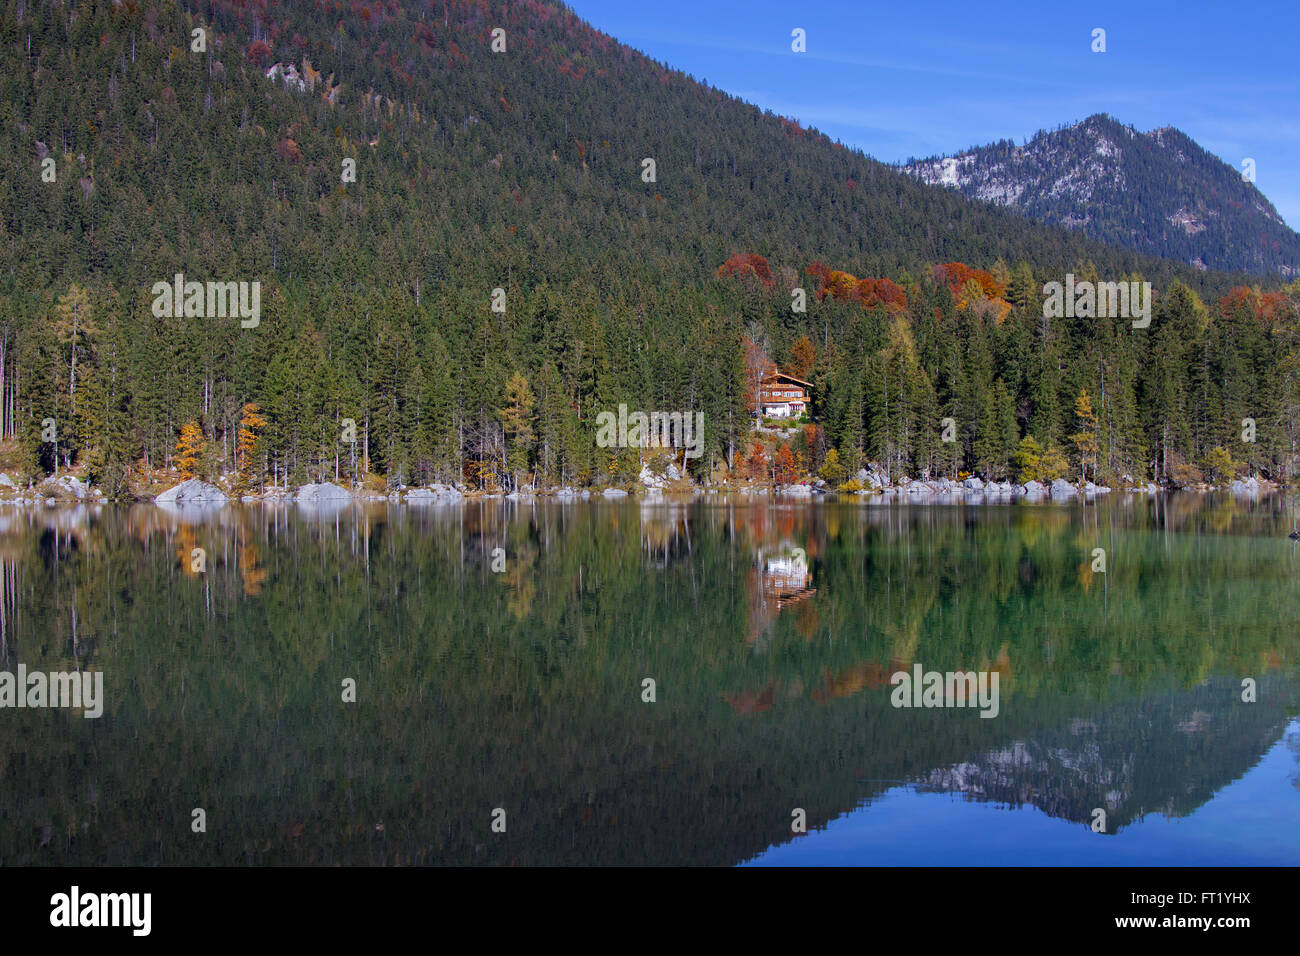 Chalet on the shores of Lake Hintersee in the Bavarian Alps, Berchtesgadener Land, Upper Bavaria, Germany - Stock Image